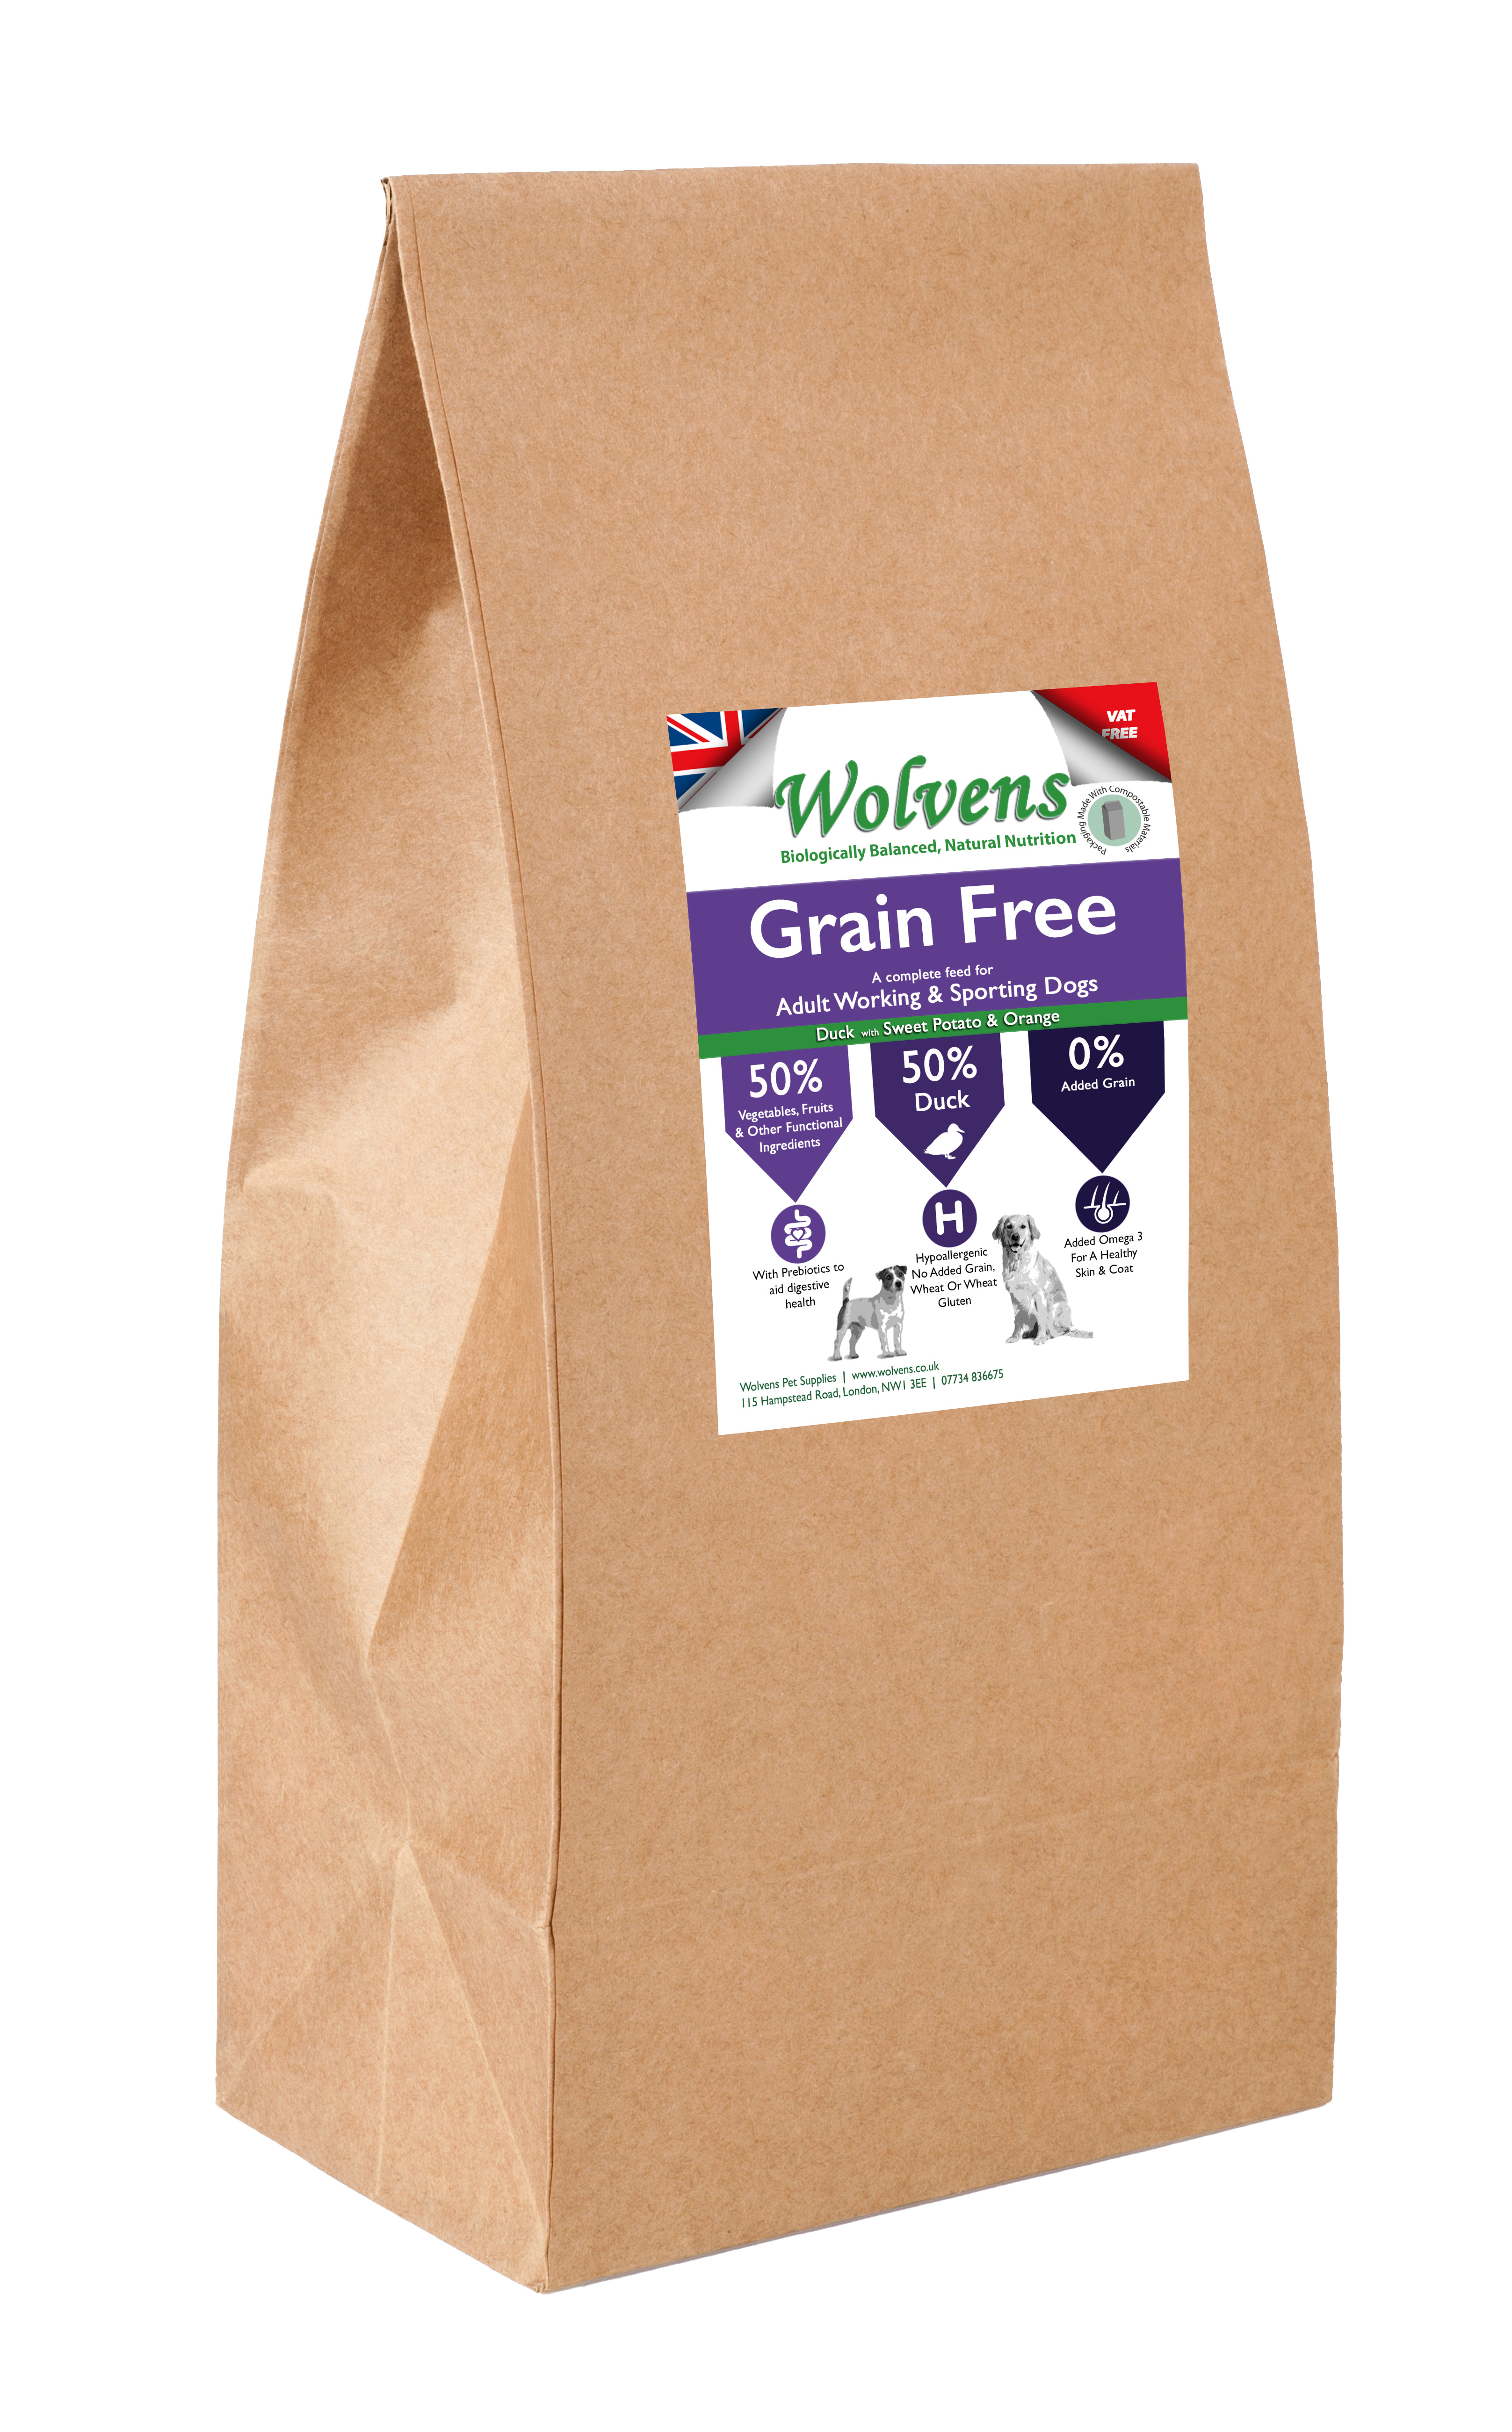 Wolvens Grain Free Dog Food. Duck